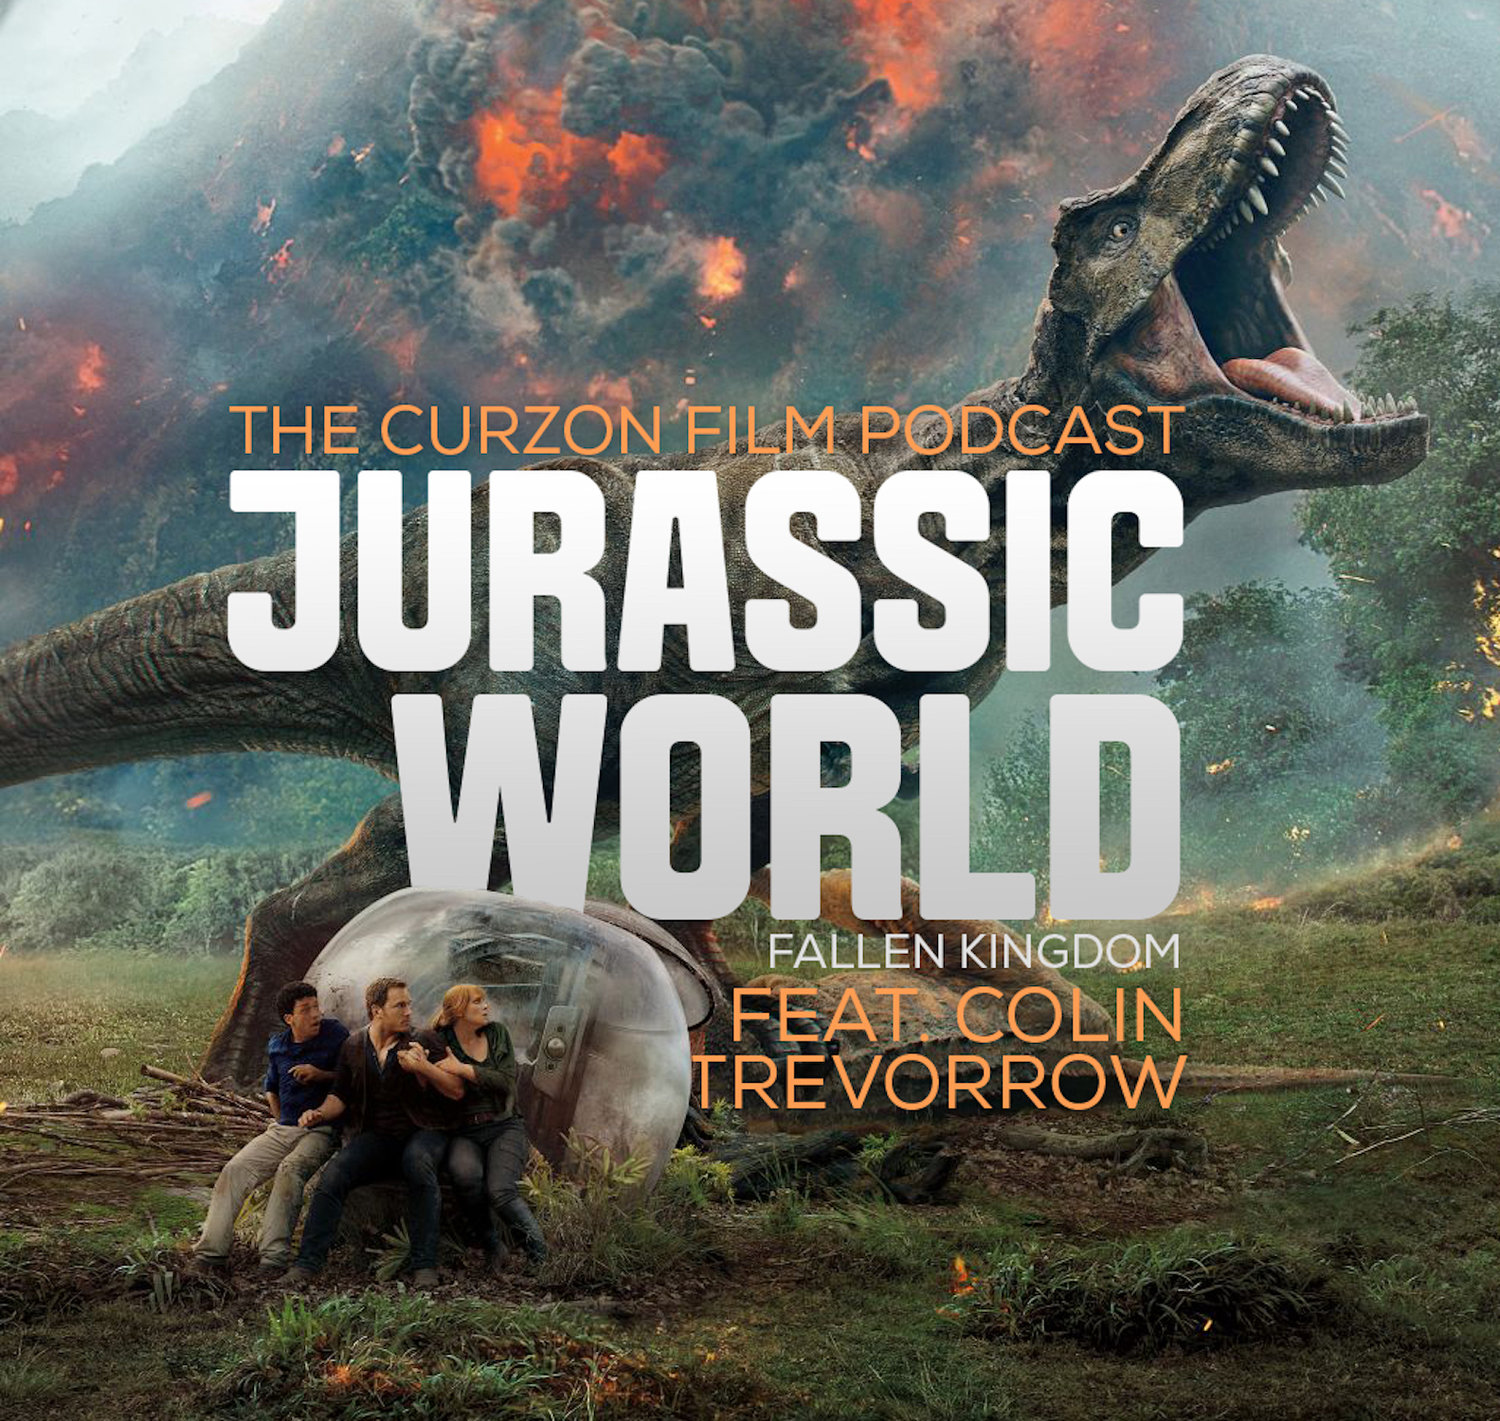 Jurassic World: Fallen Kingdom feat  Colin Treverrow | Curzon Film